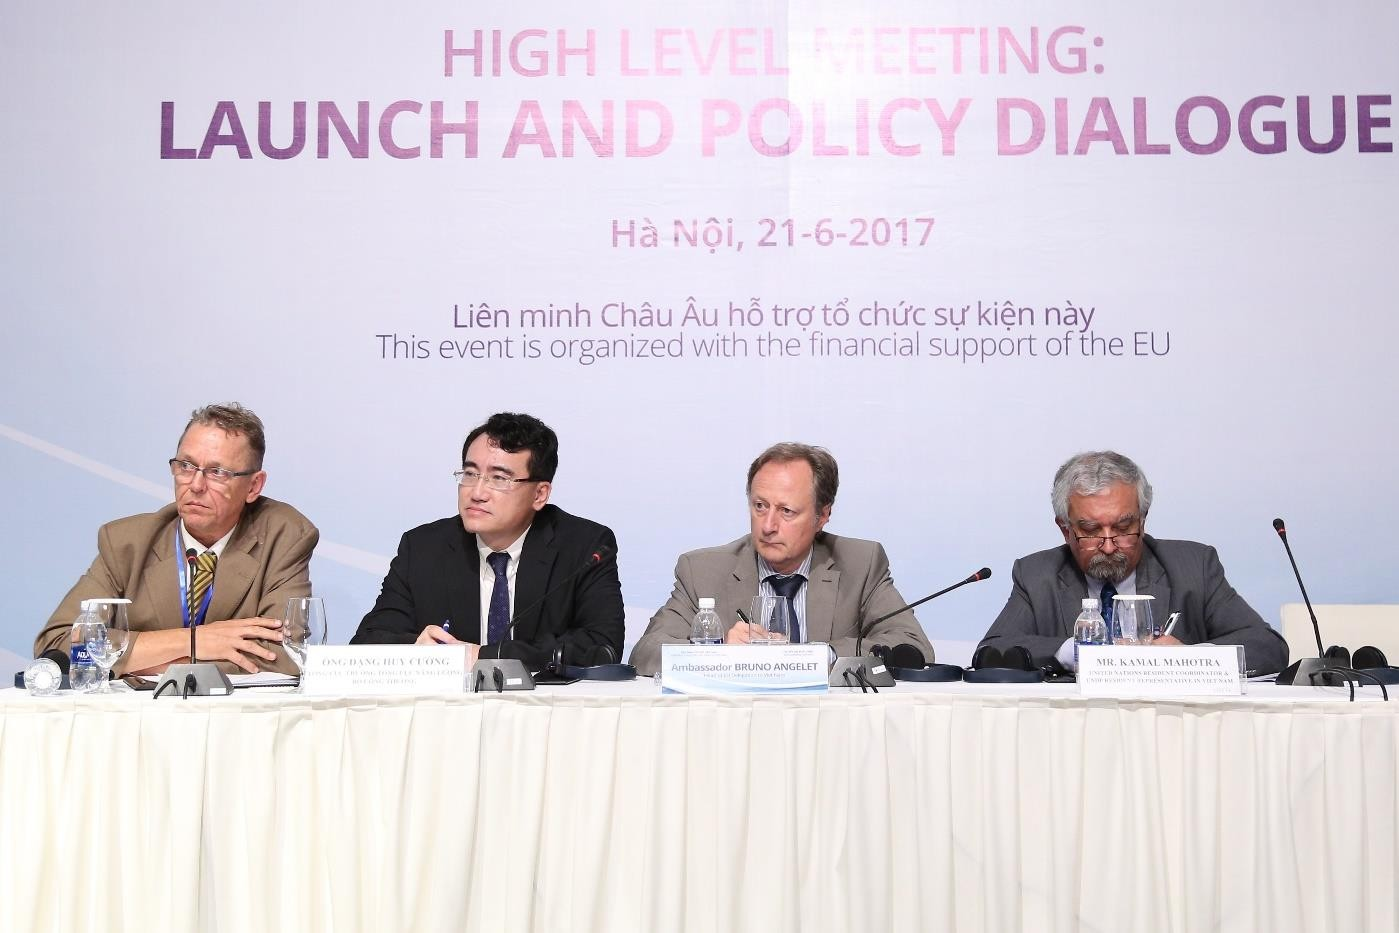 Panel moderator (from left to right) Koos Neefjes, Dang Huy Cuong (former General Director, General Directorate of Energy), Bruno Angelet (EU Ambassador) and Kamal Malhotra (UN Resident Coordinator)